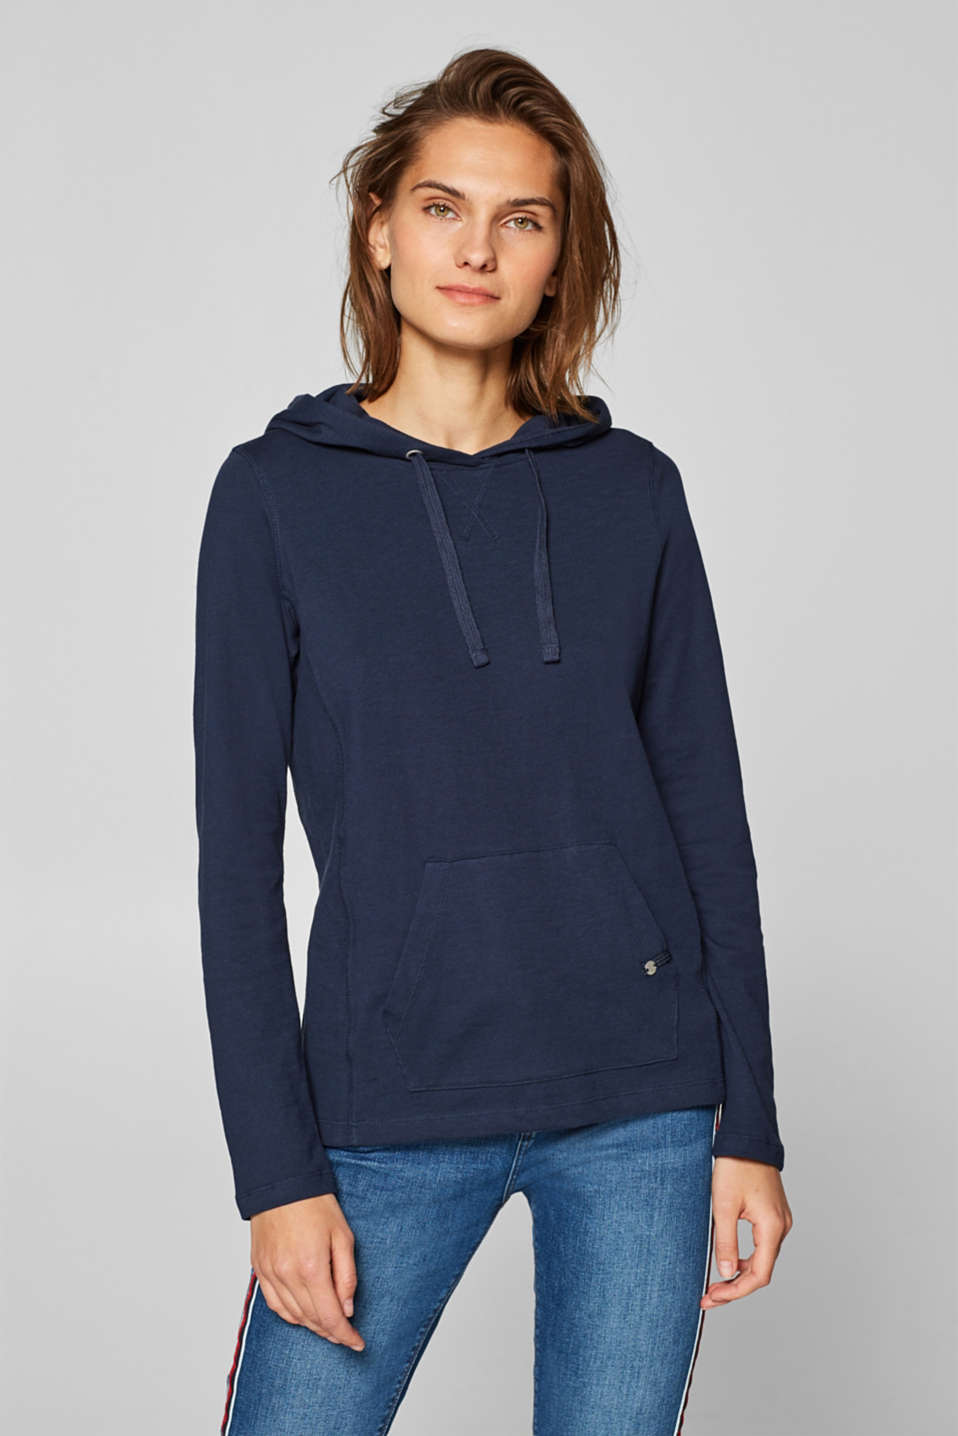 Esprit - 100% cotton hoodie containing organic cotton